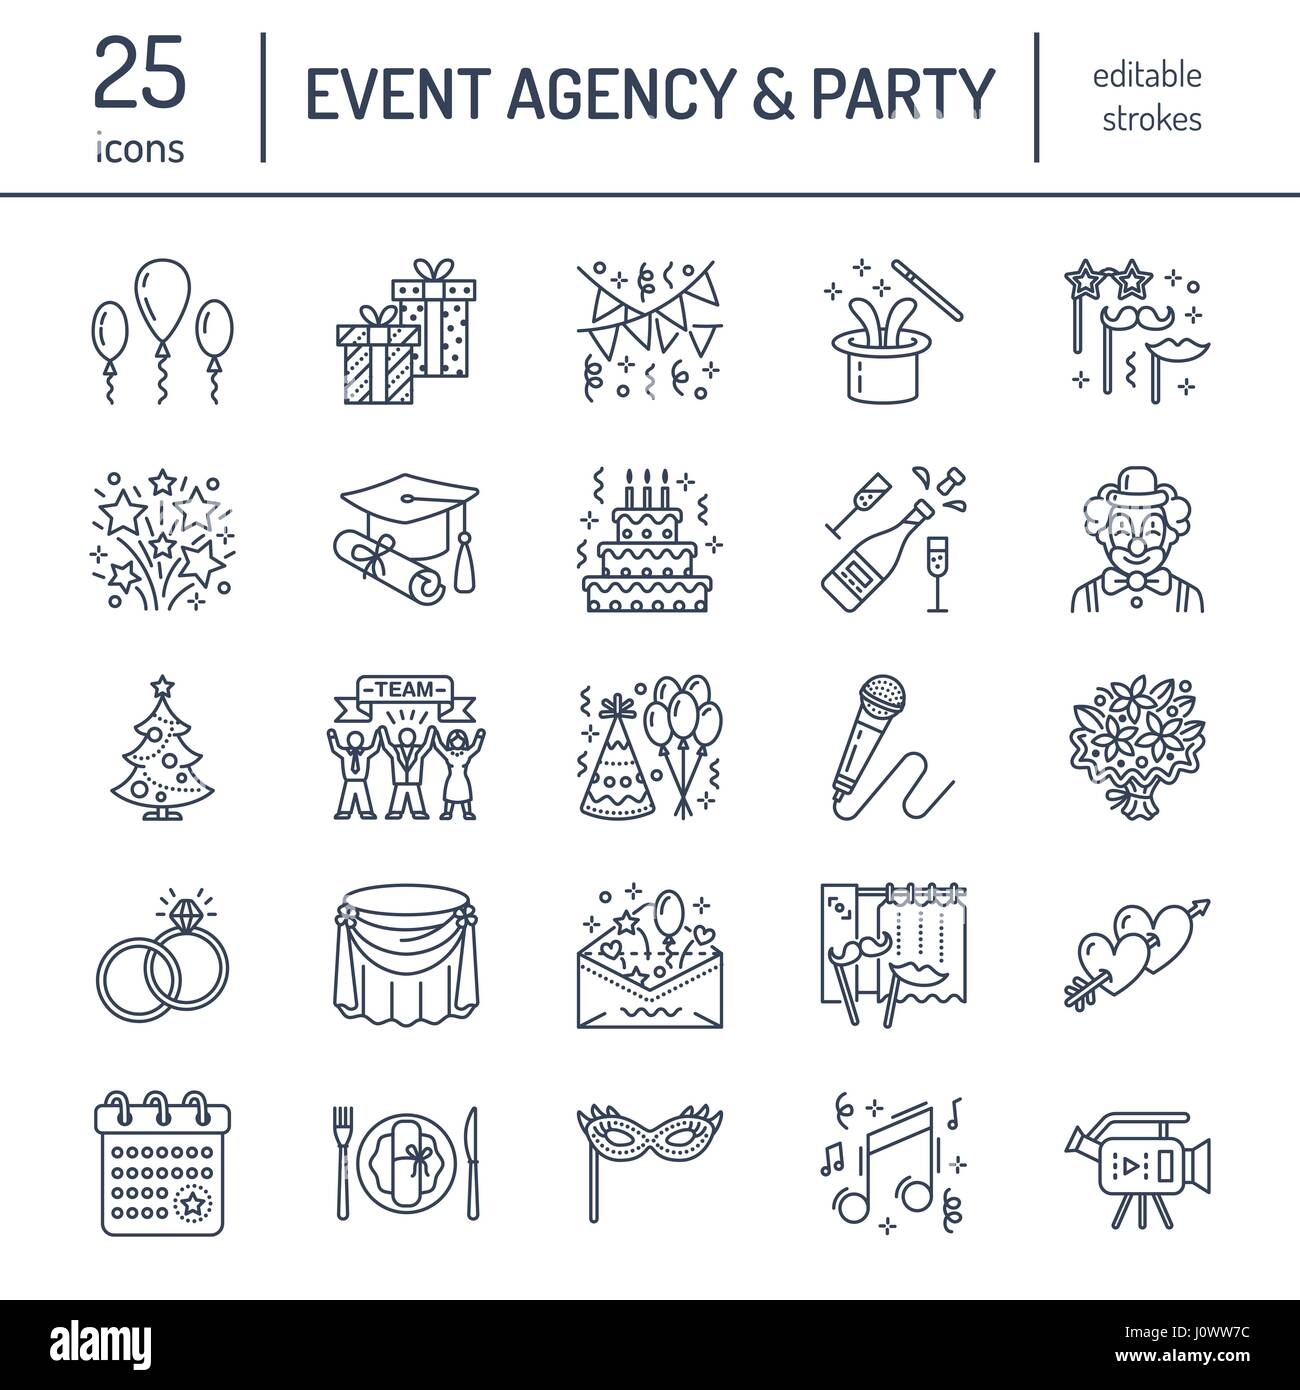 Event agency wedding organization vector line icon party service event agency wedding organization vector line icon party service catering birthday cake balloon decoration flower delivery invitation clown stopboris Image collections